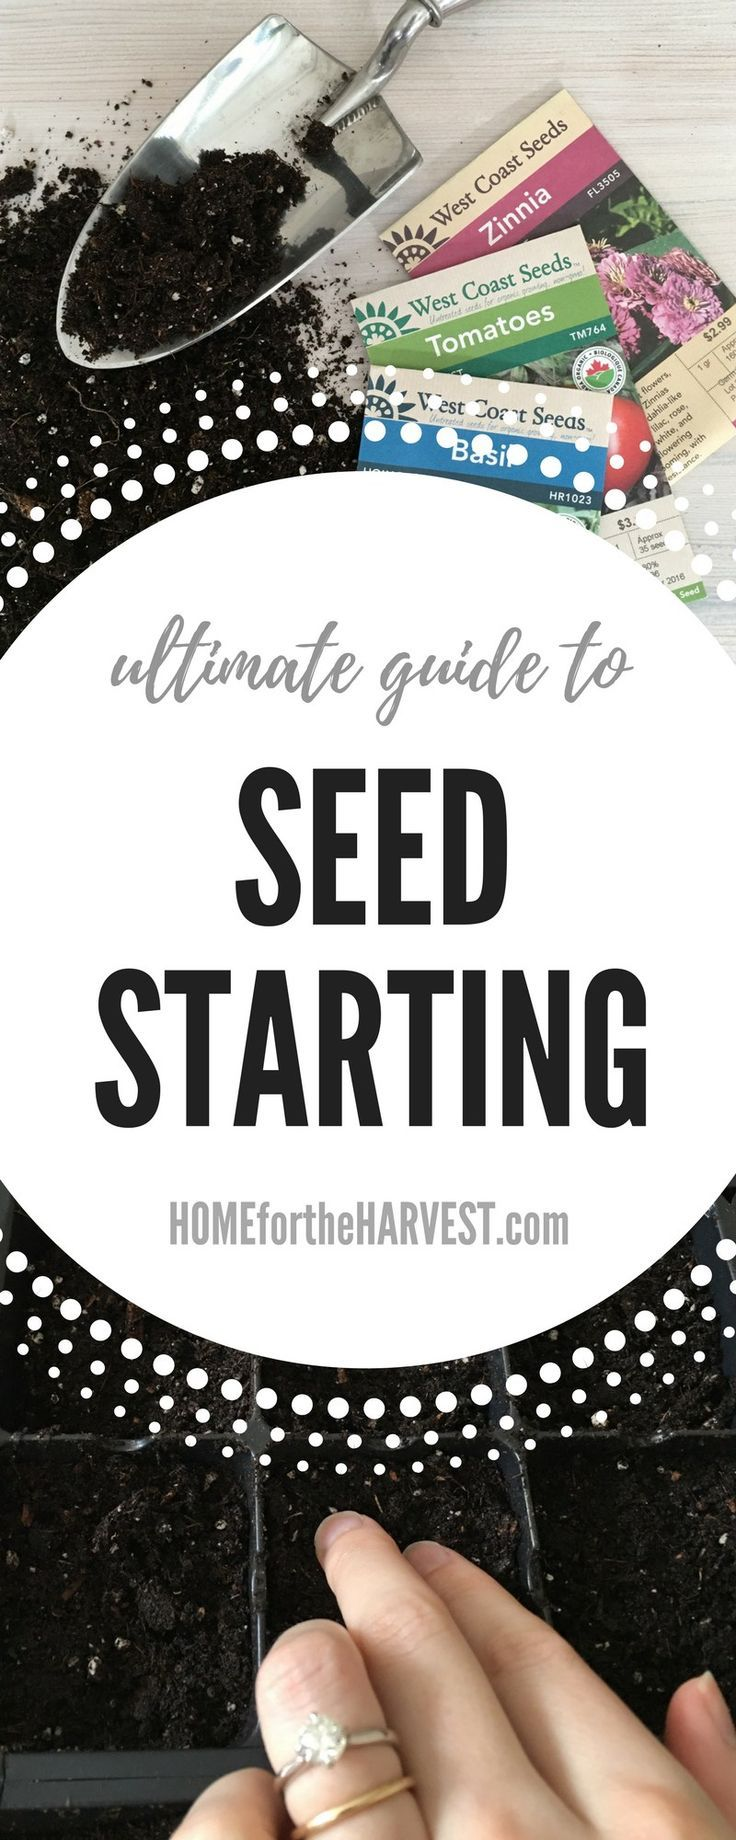 The ultimate home growing guide